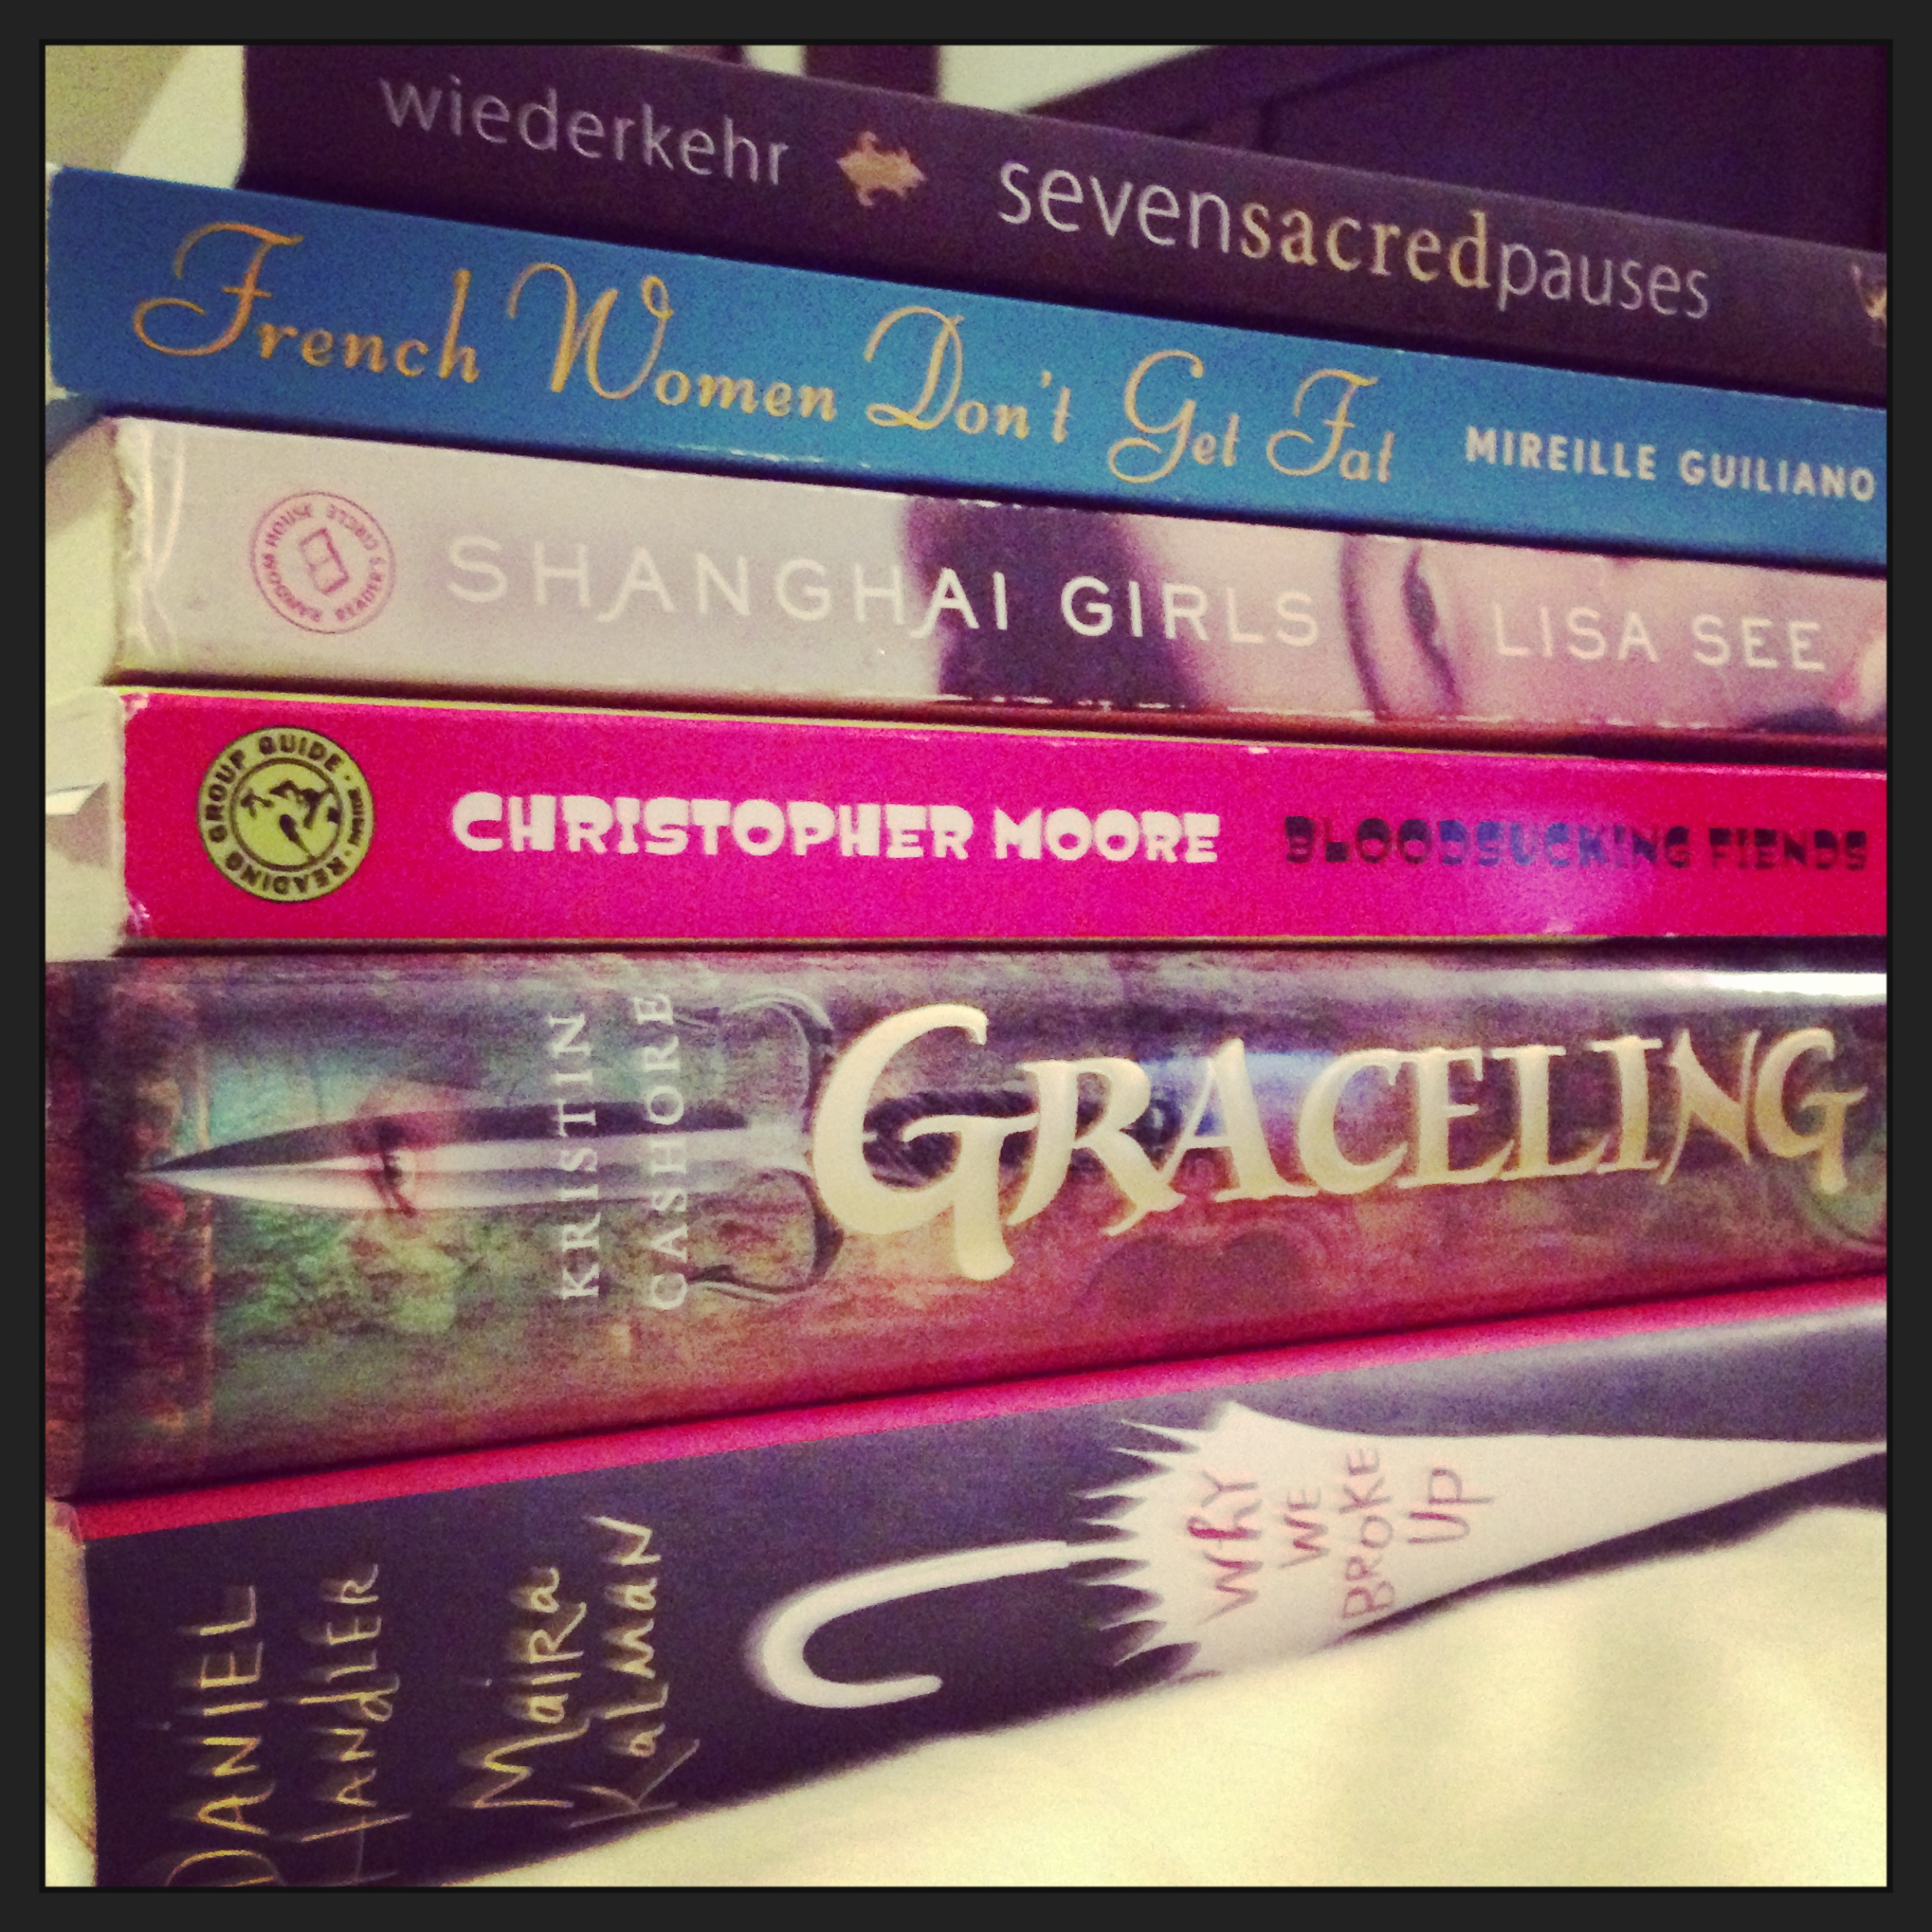 This is the stack of books I entered vacation with ...and ended up staying pretty close to it!